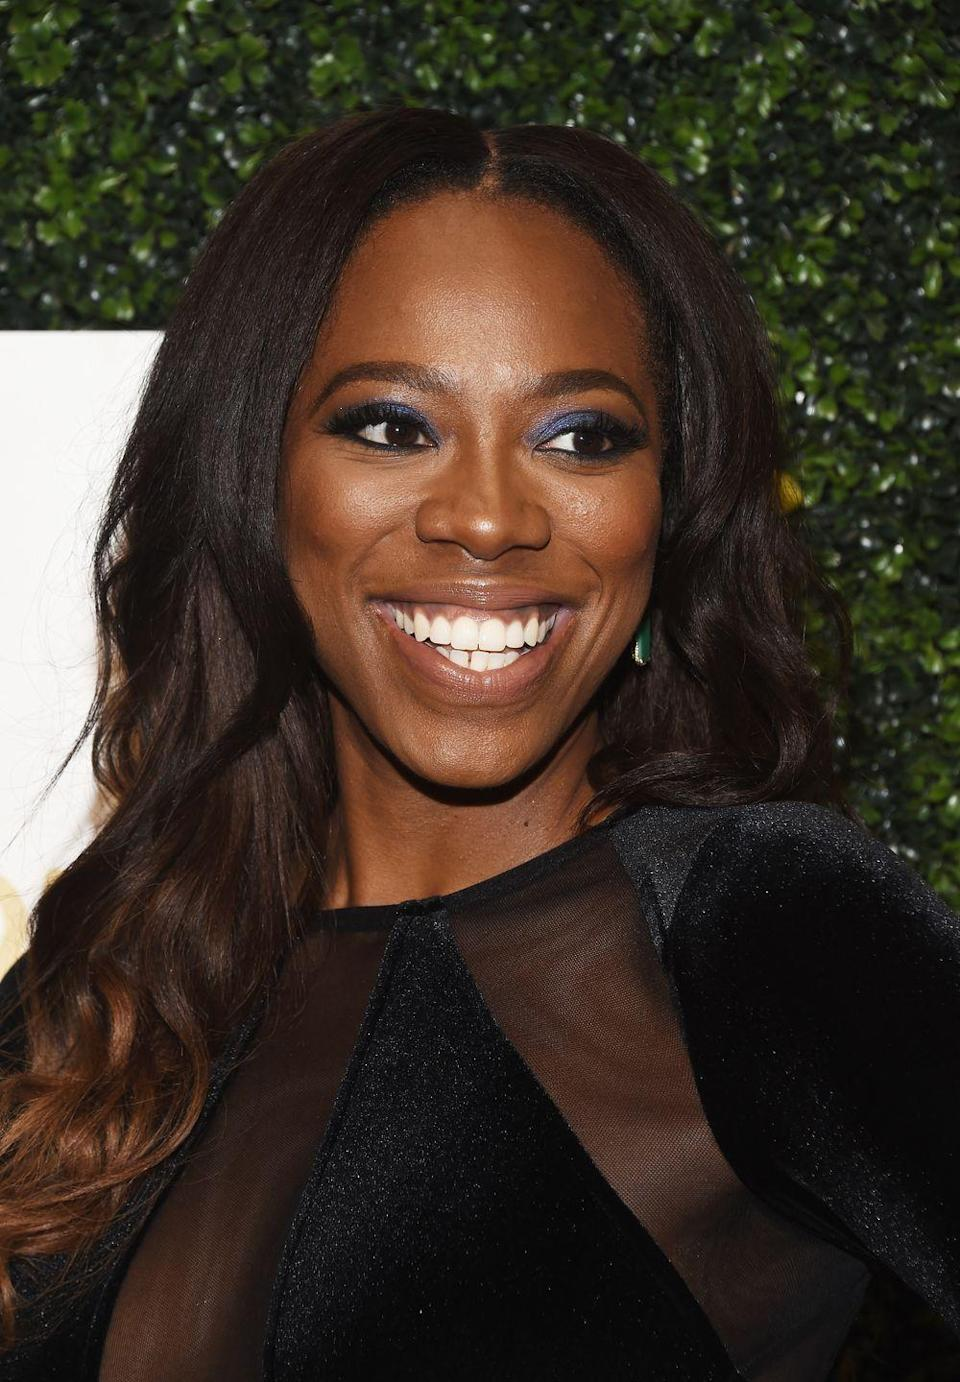 """<p>Keep your fall months warm by adding gold tones to your hair like <strong>Yvonne Orji</strong>, a method that's ideal for those with darker complexions. """"Warm tones with golden highlights are best,"""" says Kattia Solano, a hairstylist and found of Butterfly Studio Salon. """"However, be sure to stay away from too much warmth or red tones, as you don't want to wash out the skin's natural glow."""" </p>"""